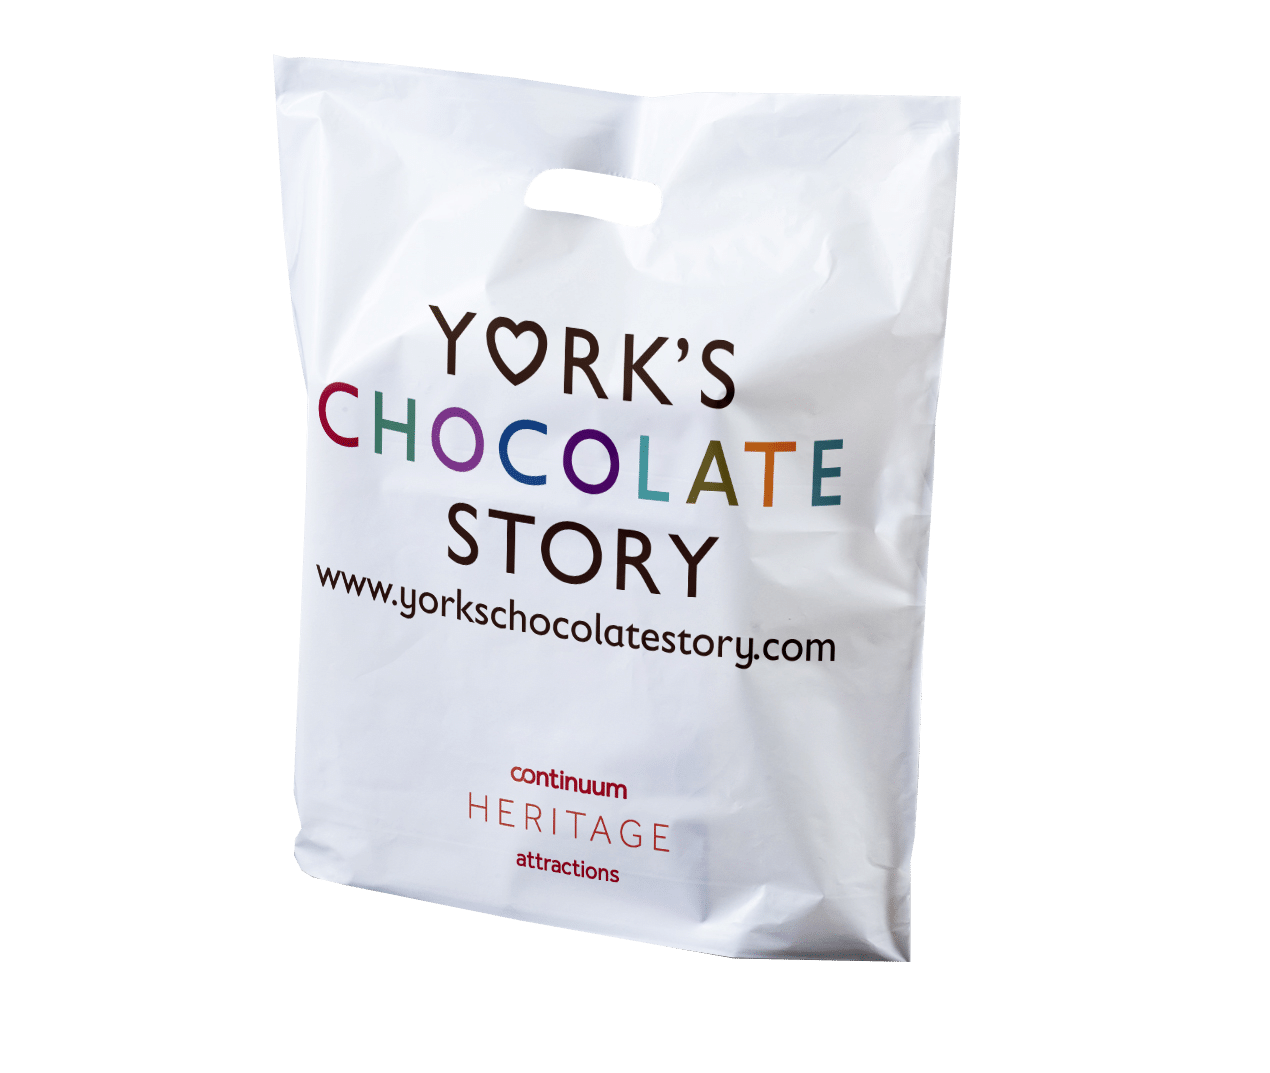 York's Chocolate Story Printed Exhibition Bag